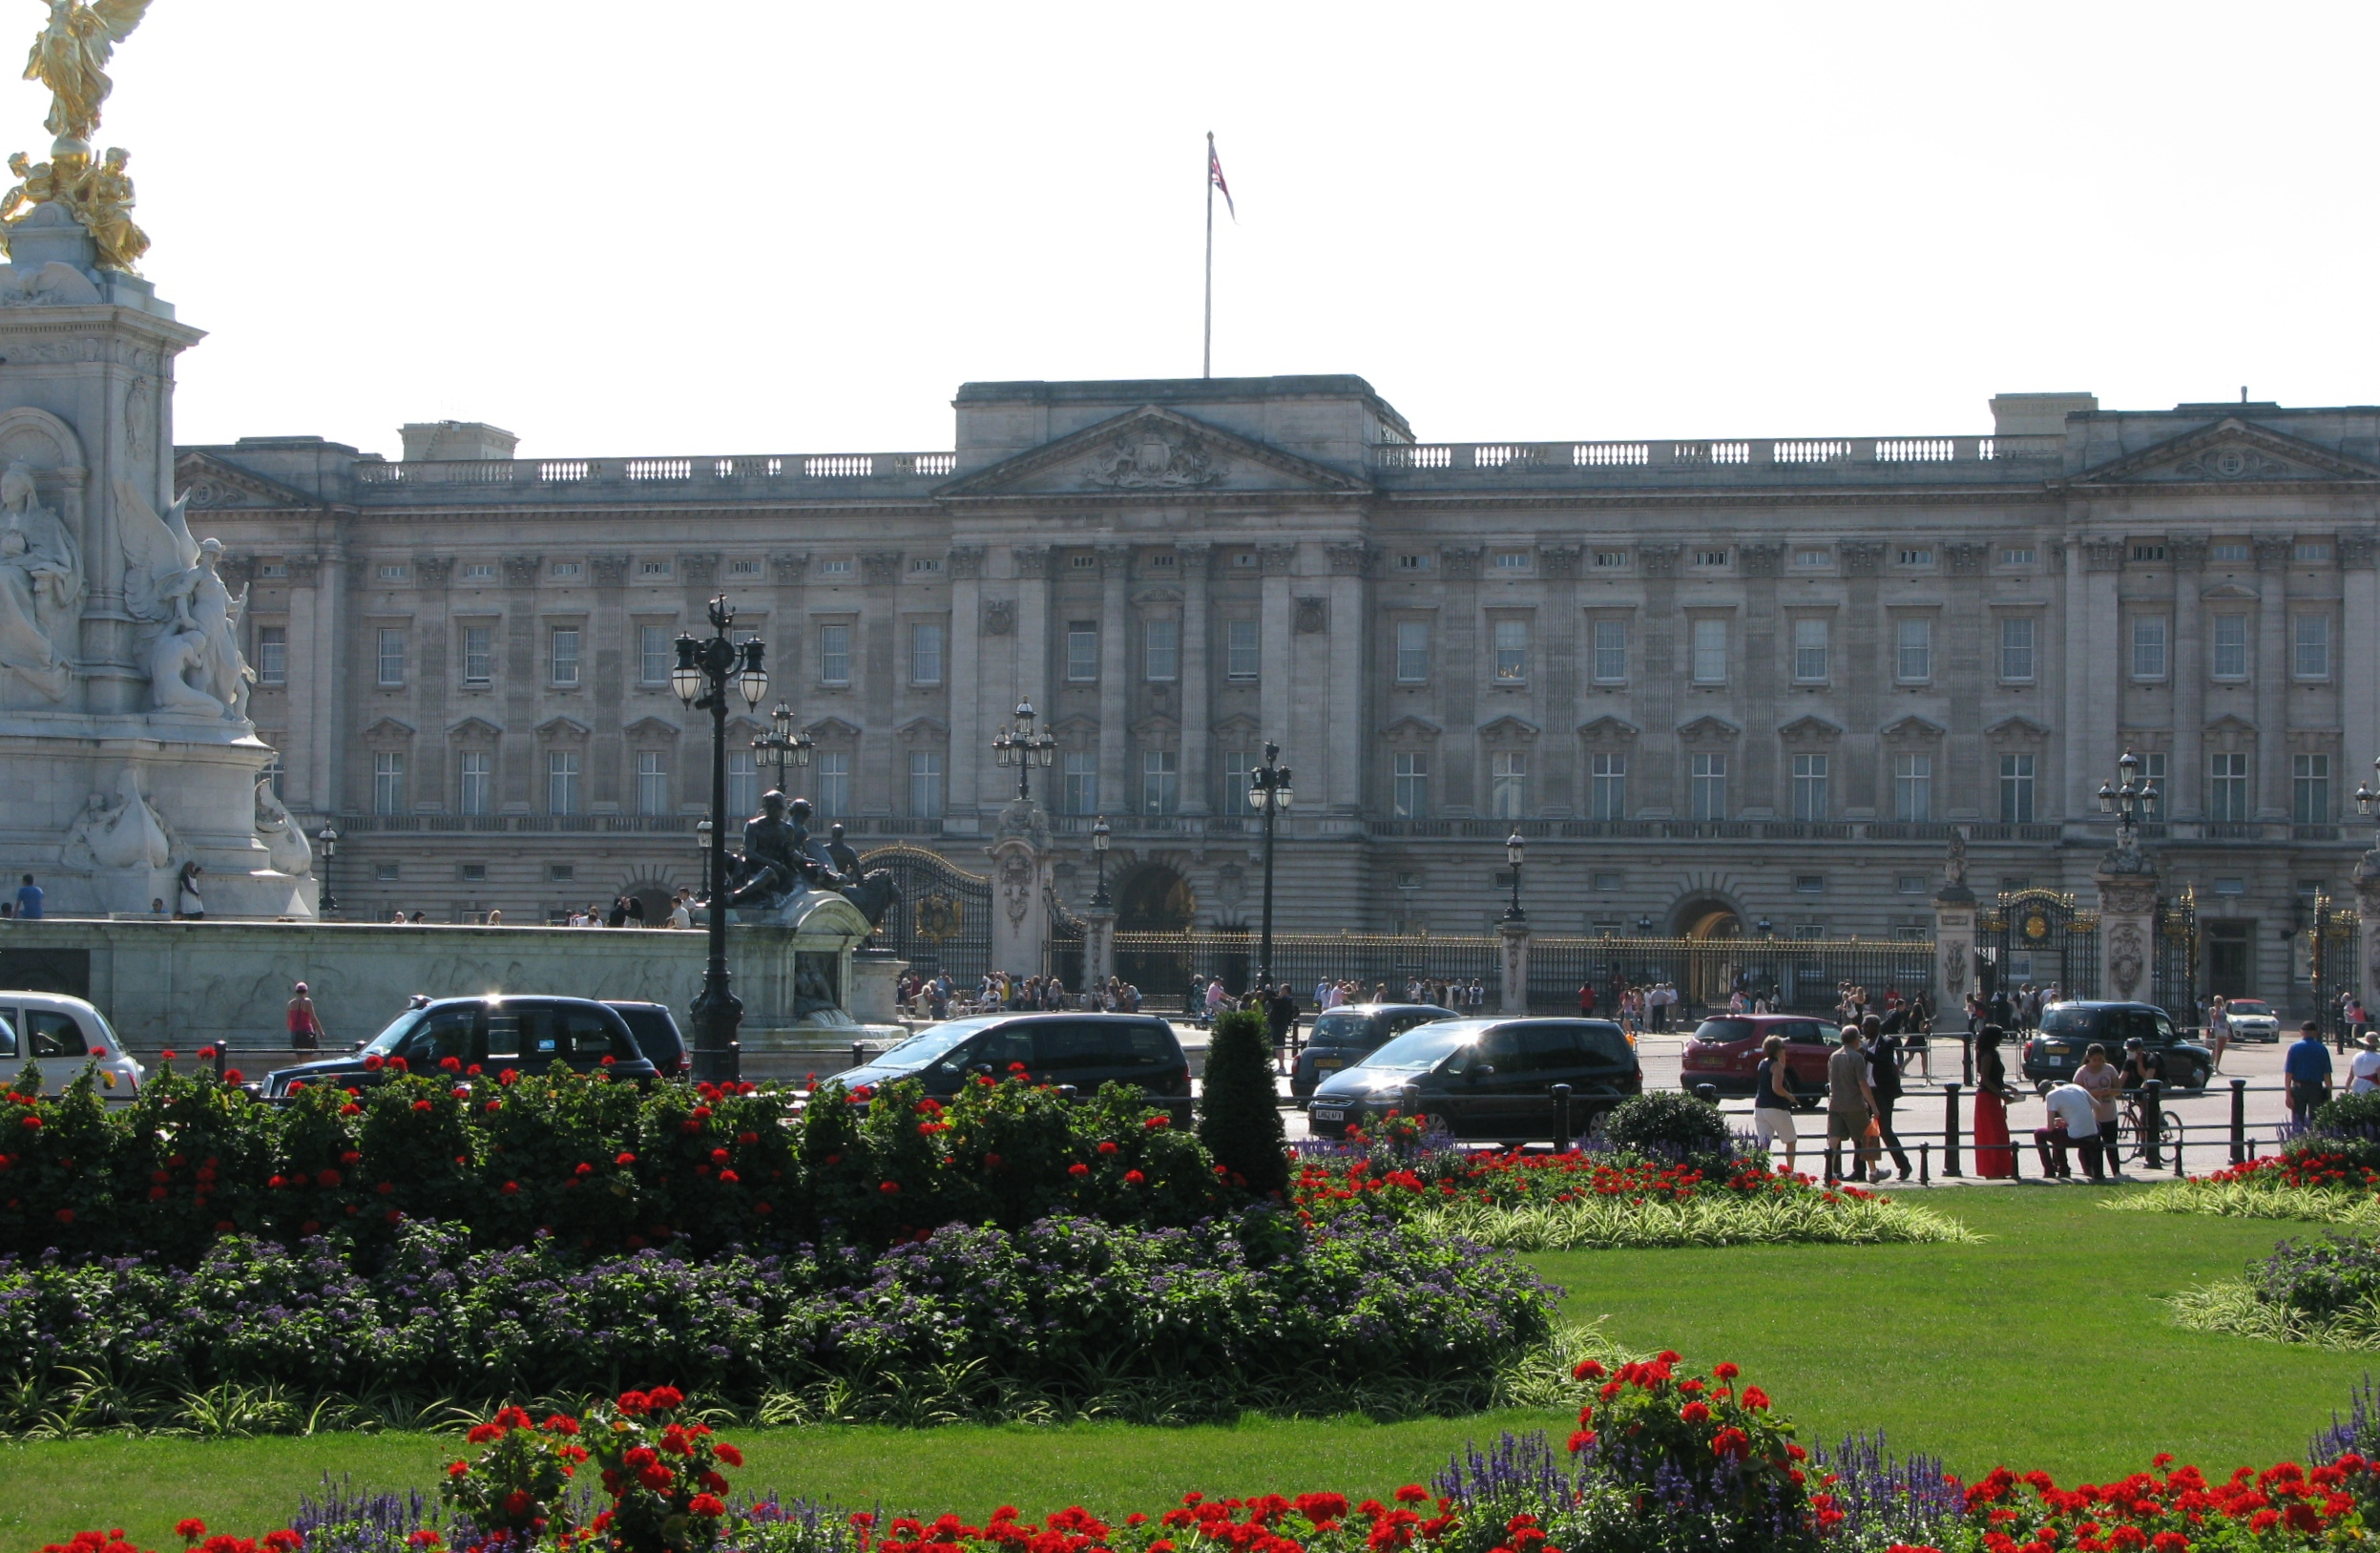 Buckingham Palace in colour